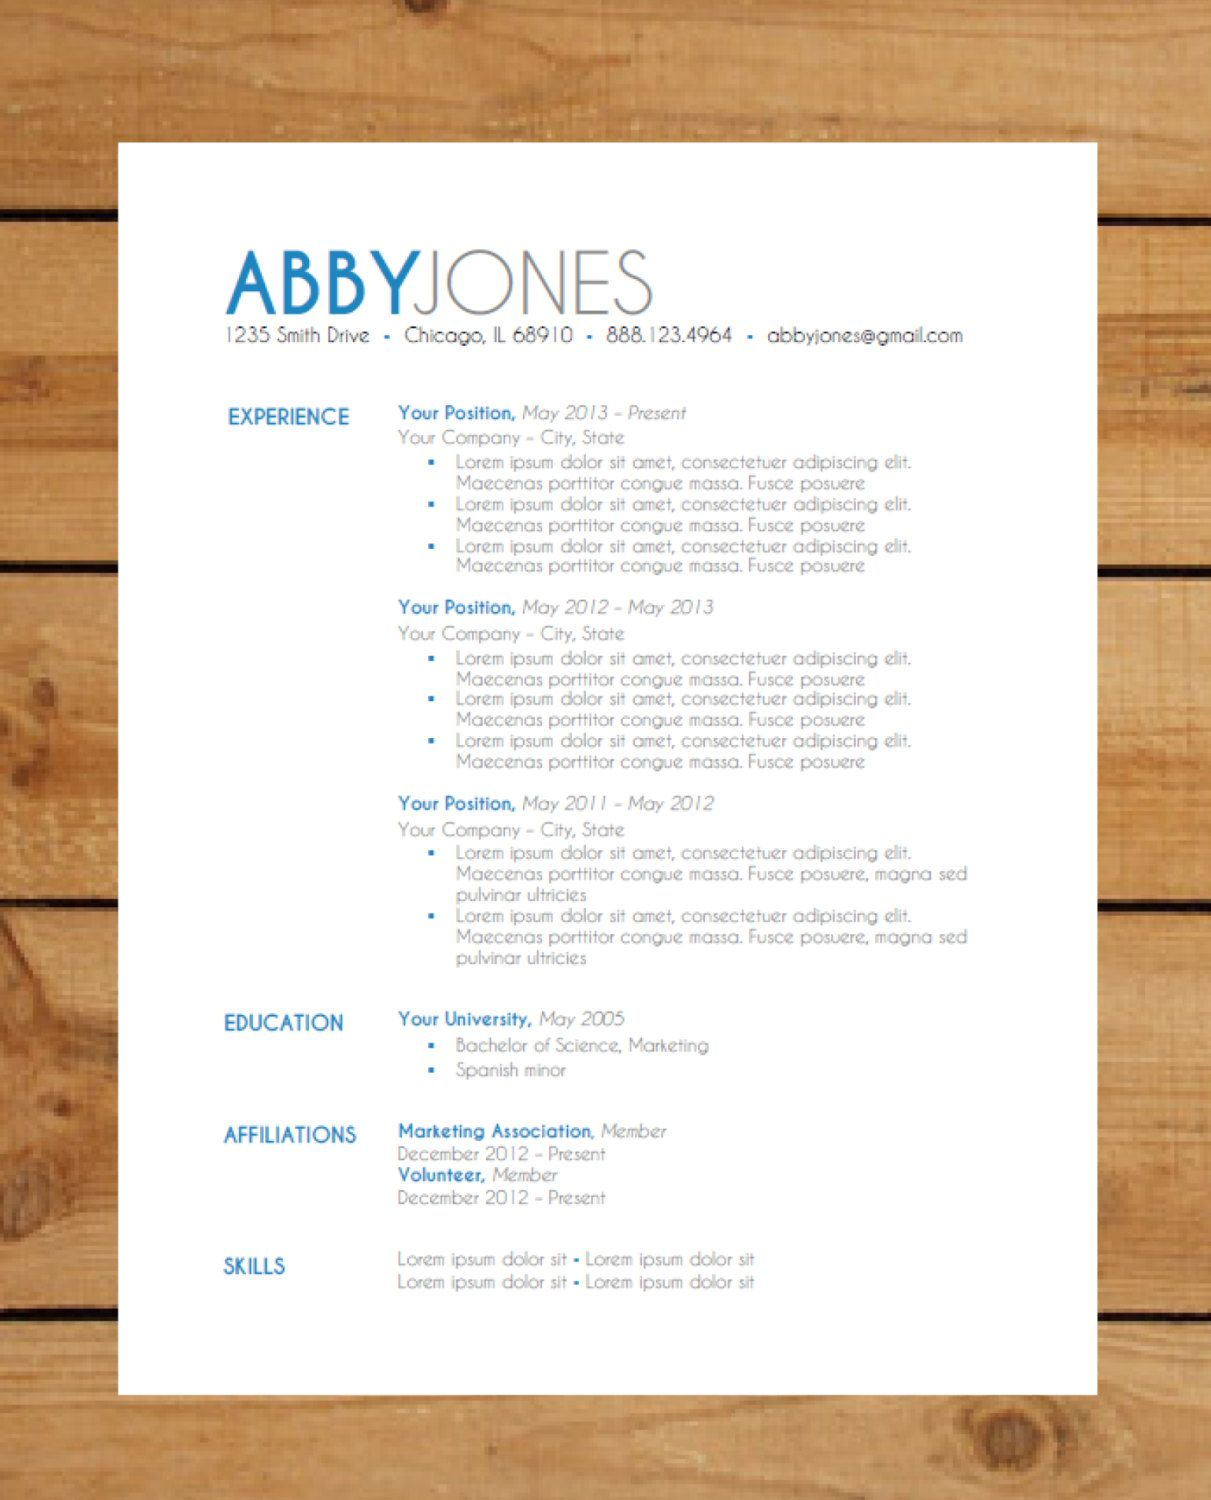 contemporary resume templates free jianbochencom 8a71dd3b798e84e22f9233b2b14a0529 contemporary resume templates free - Contemporary Resume Templates